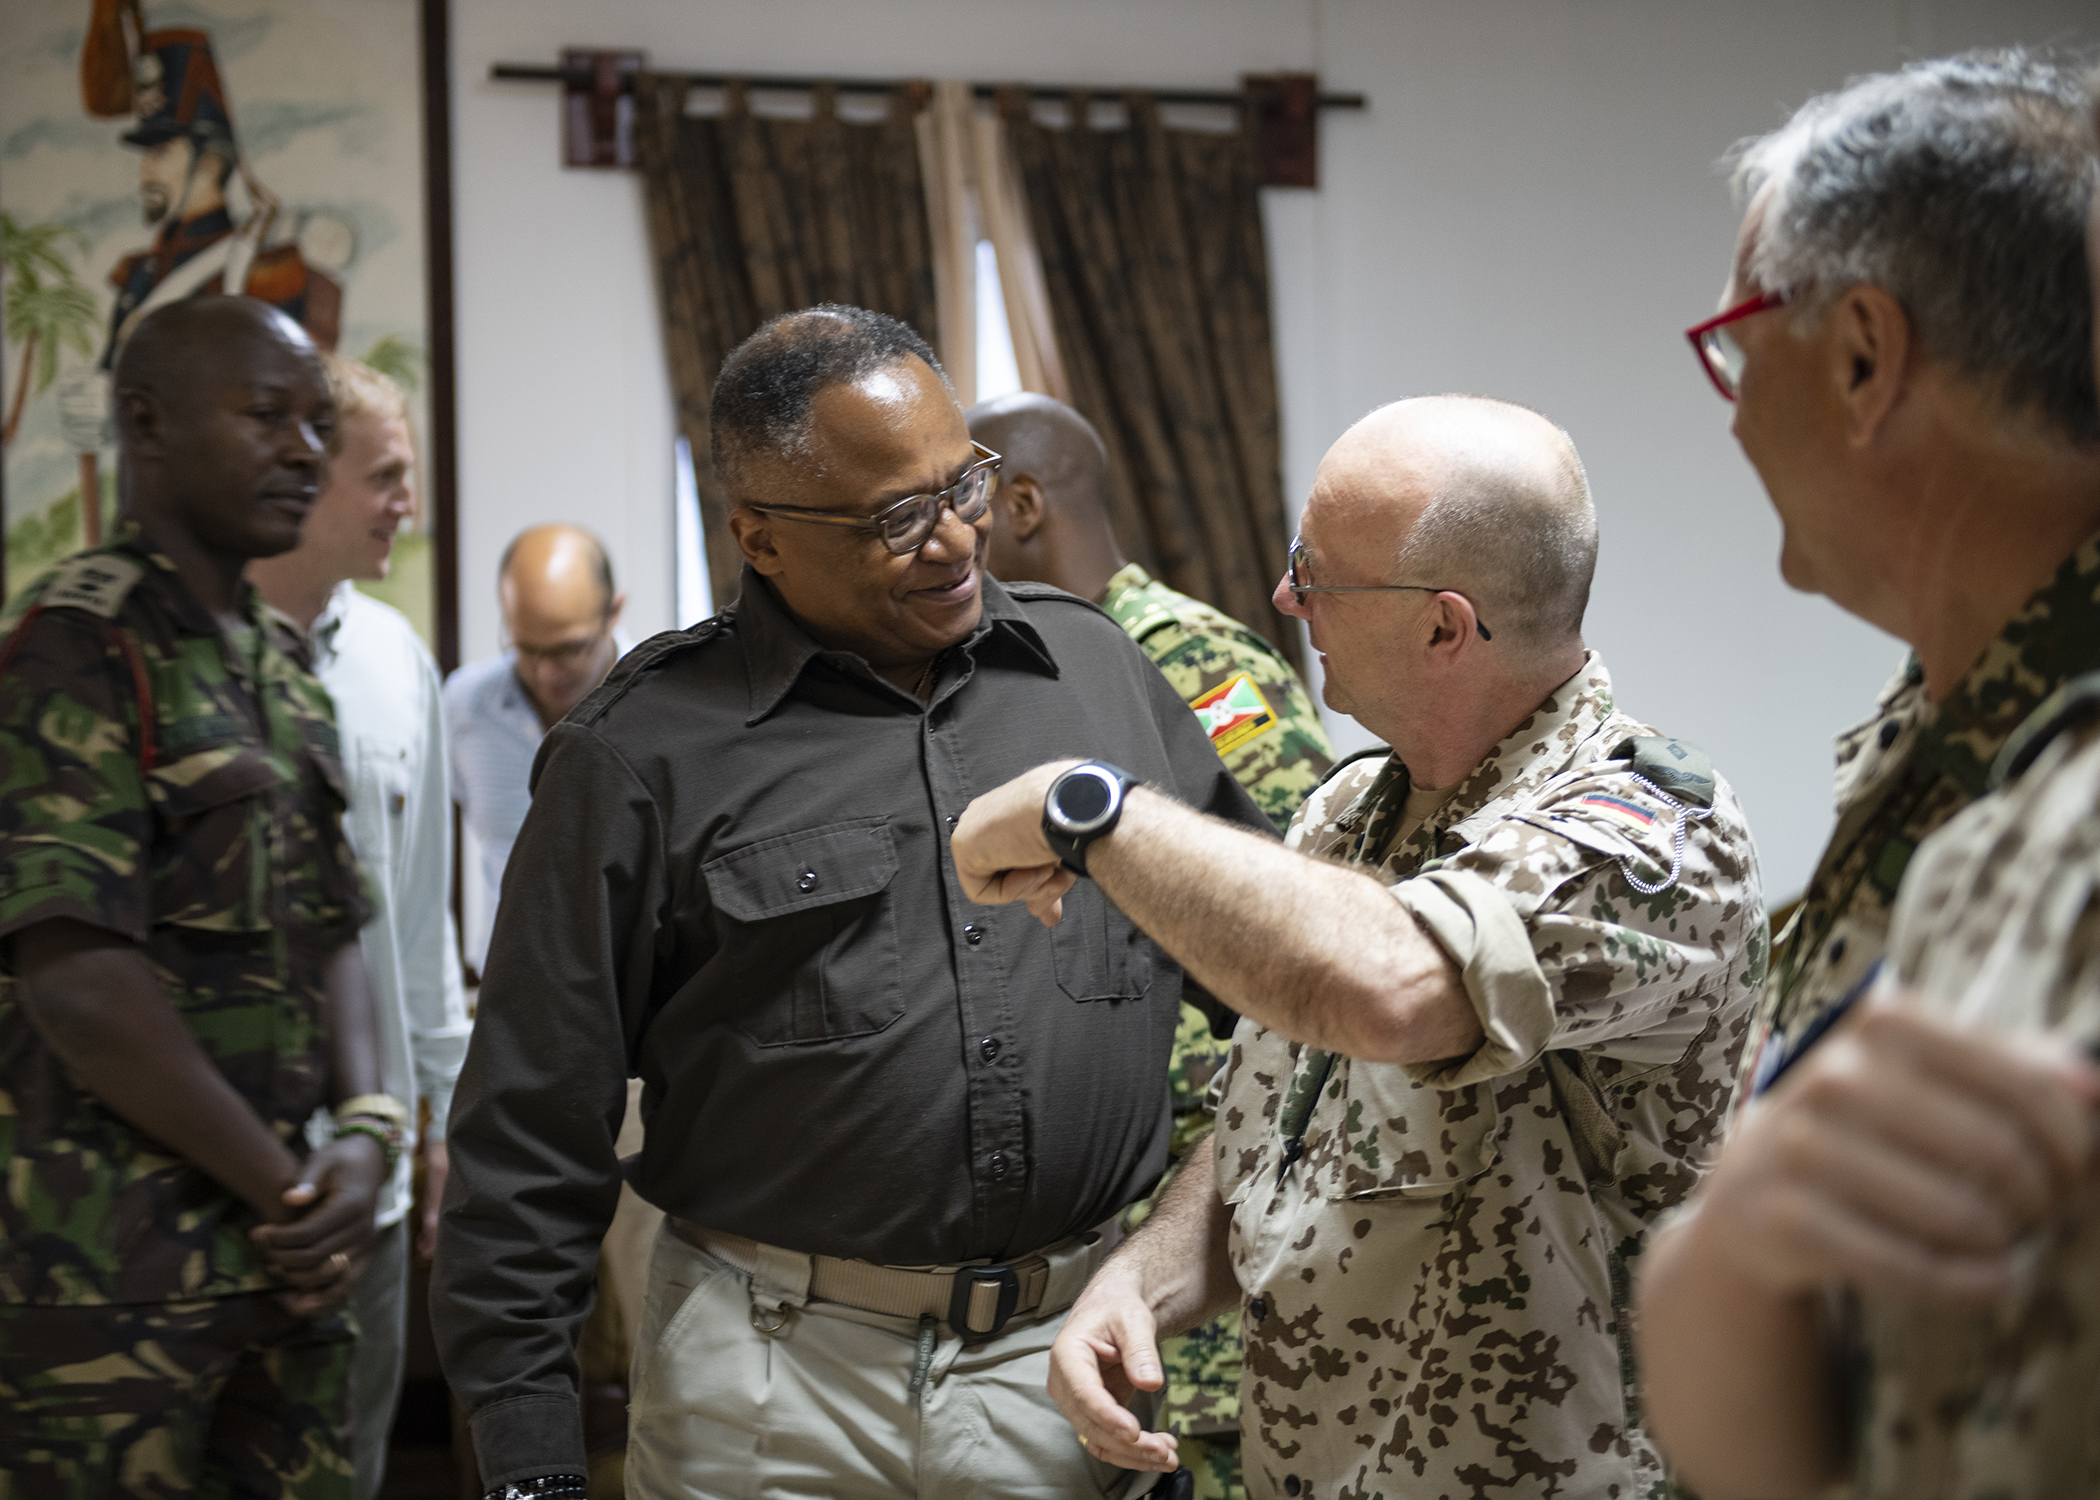 Irvin Hicks Jr., foreign policy advisor (POLAD) for Combined Joint Task Force-Horn of Africa, greets multinational military partners during a cultural exchange event at Camp Lemonnier, Djibouti, Feb. 27, 2019. Multinational military partners affiliated with Camp Lemonnier hold monthly exchange events to strengthen alliances and attract new partners in the combined joint military environment. (U.S. Air Force photo by Tech. Sgt. Shawn Nickel)